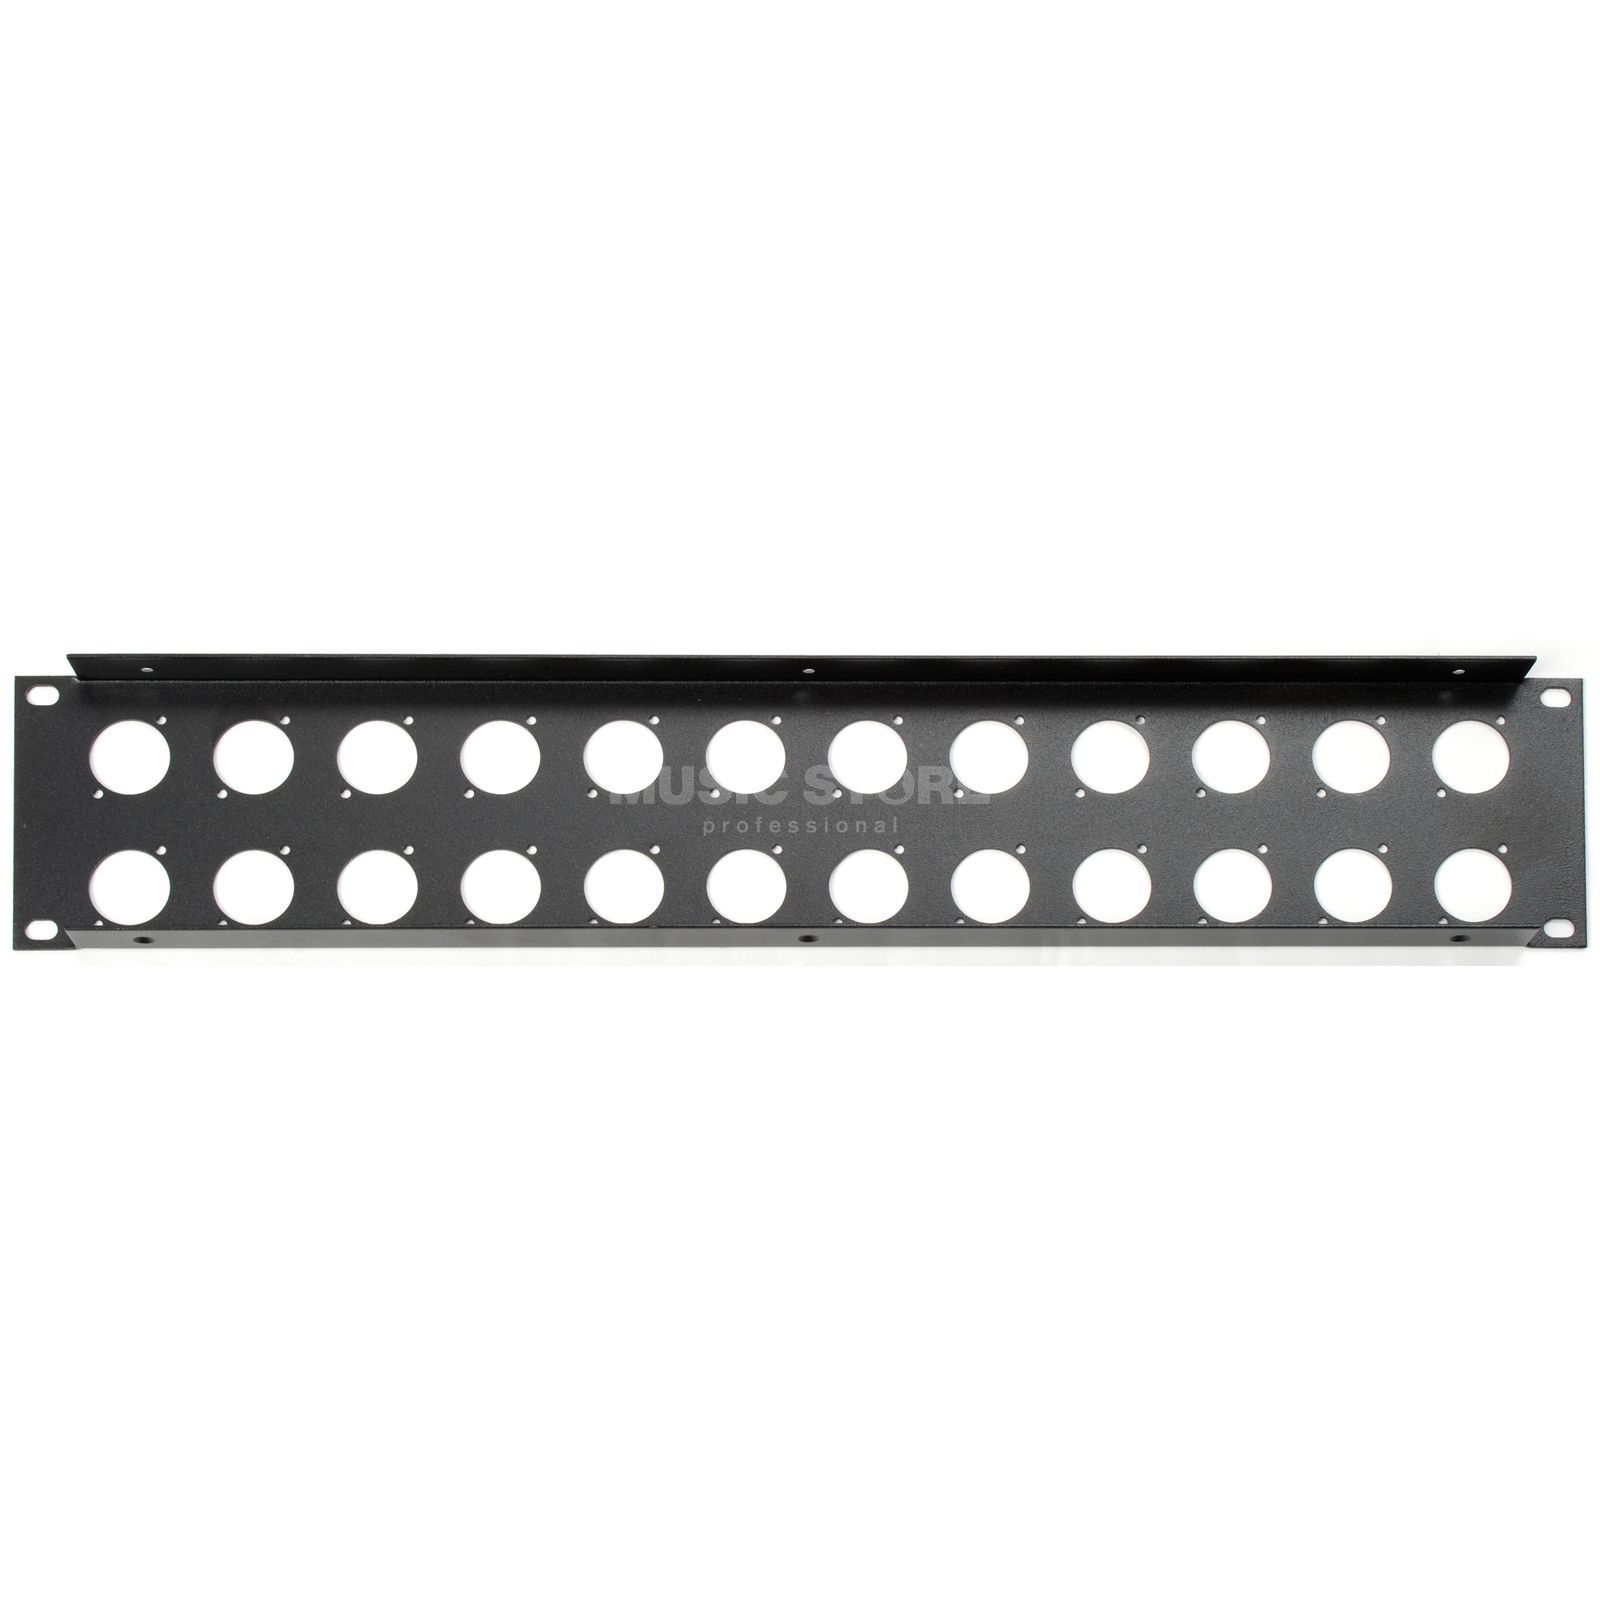 "Adam Hall 19"" Rack panel f. 24xXLR - 2HE Steel Produktbillede"